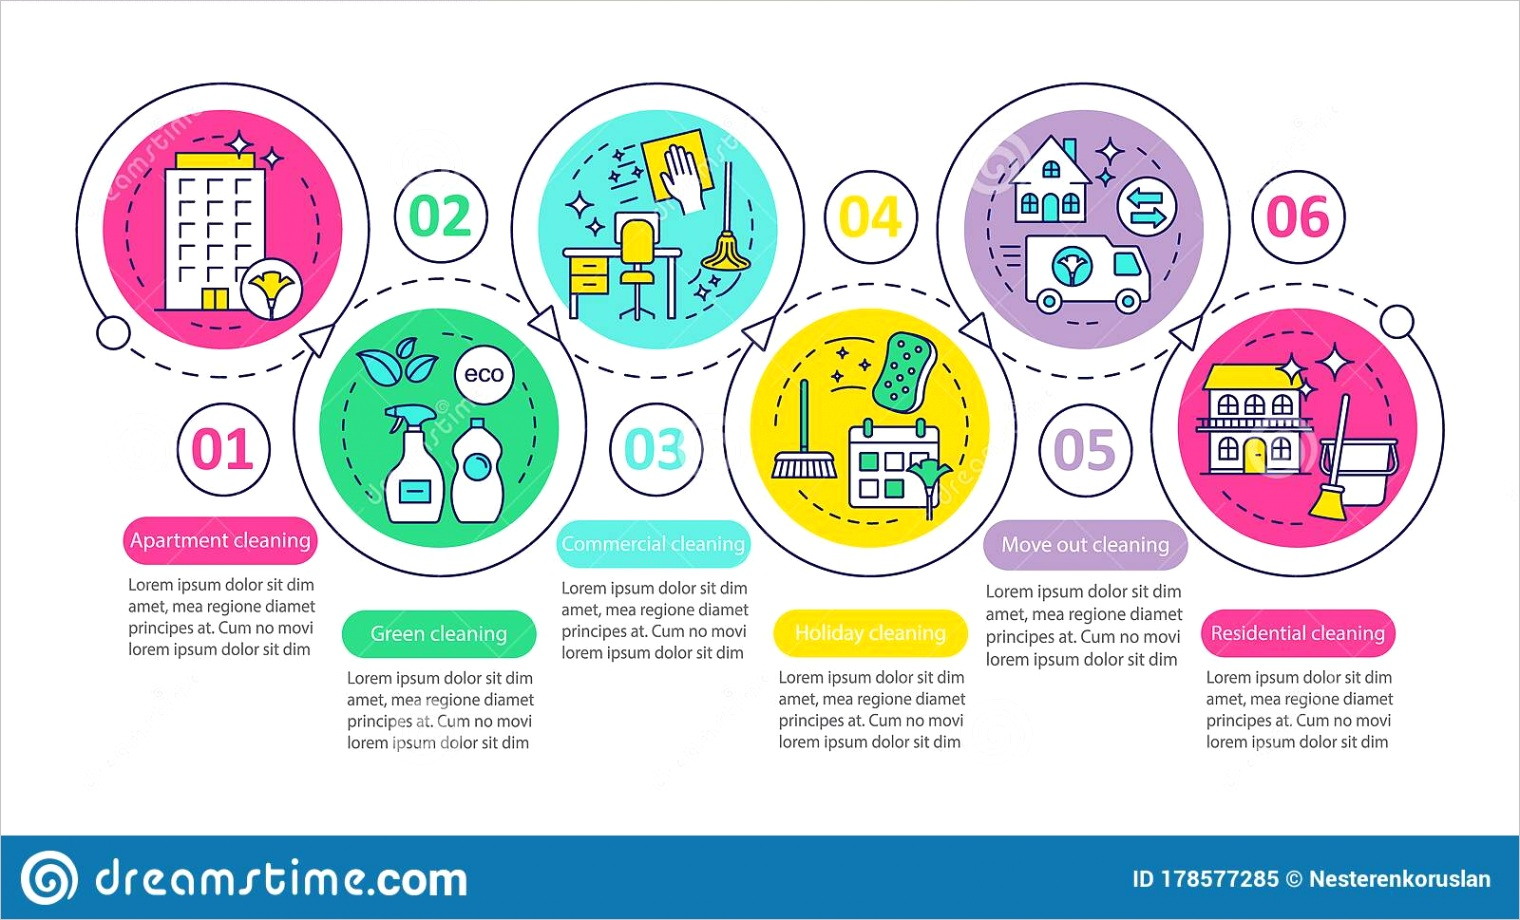 cleaning services vector infographic template mercial cleanup business presentation design elements data visualization six image